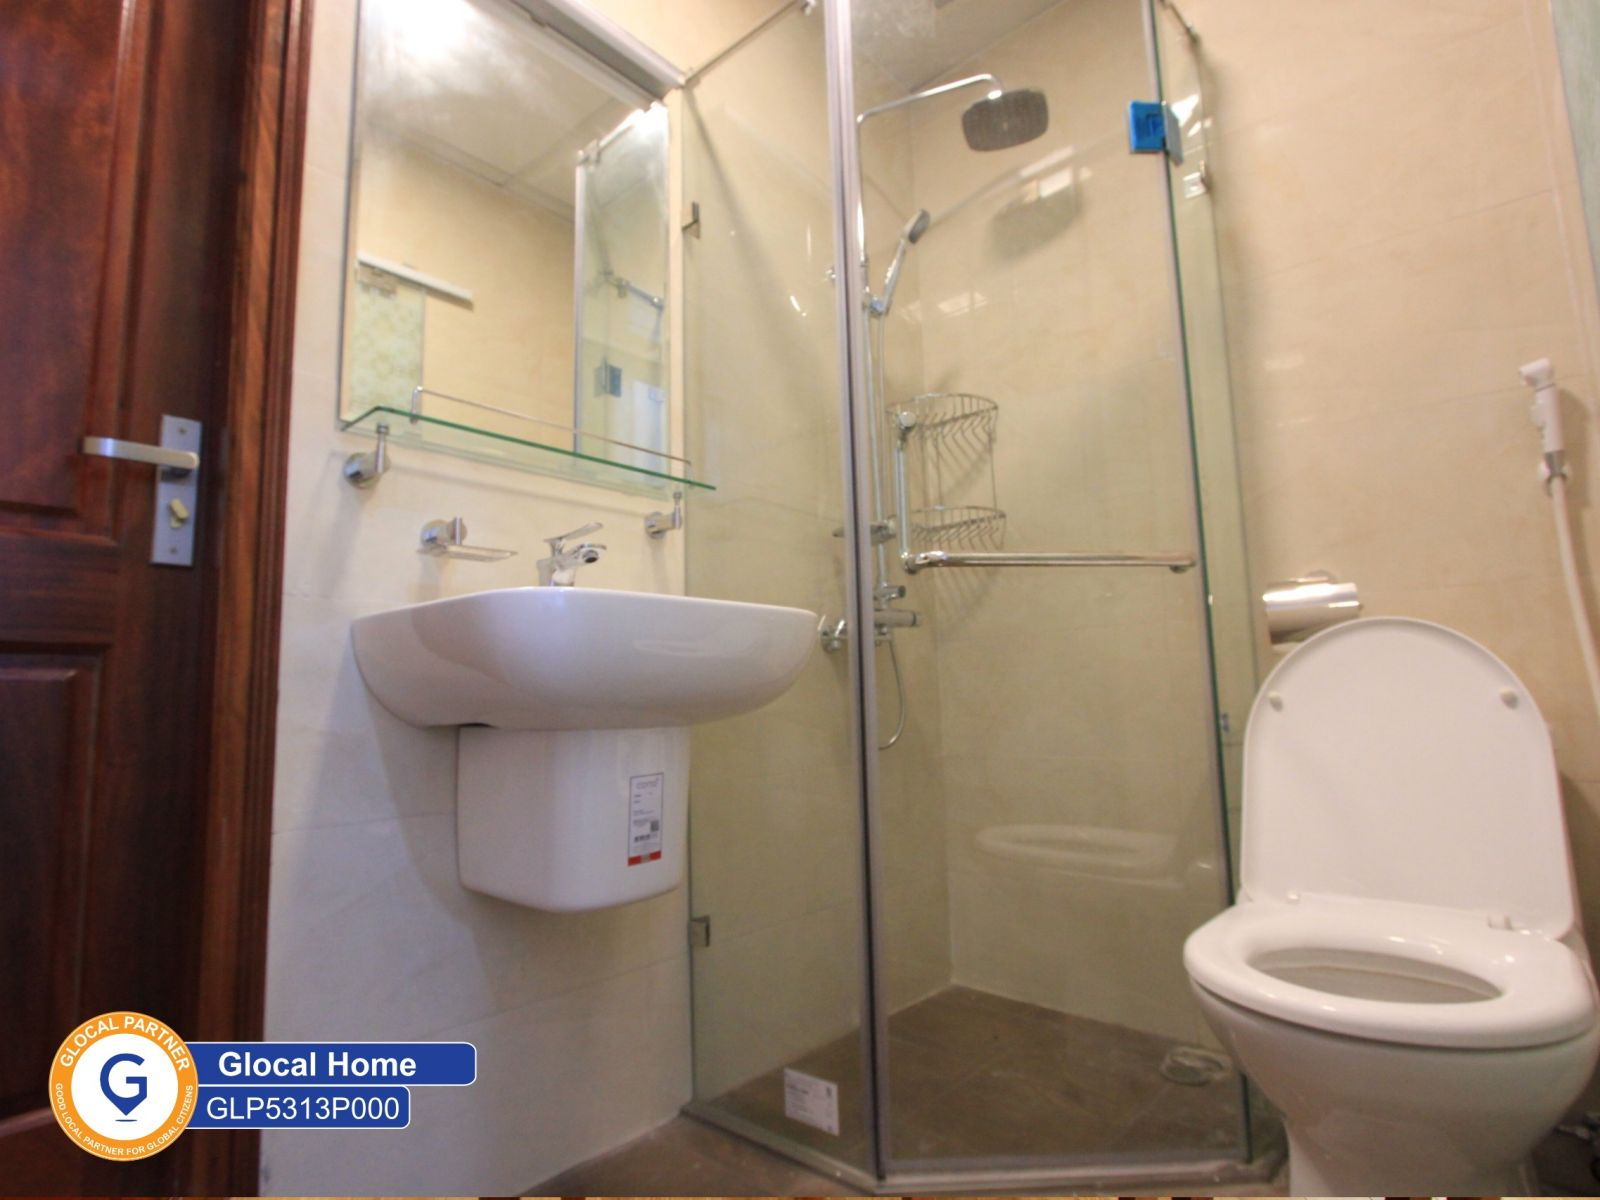 3 bedroom apartment with balcony, fully furnished in Au Co